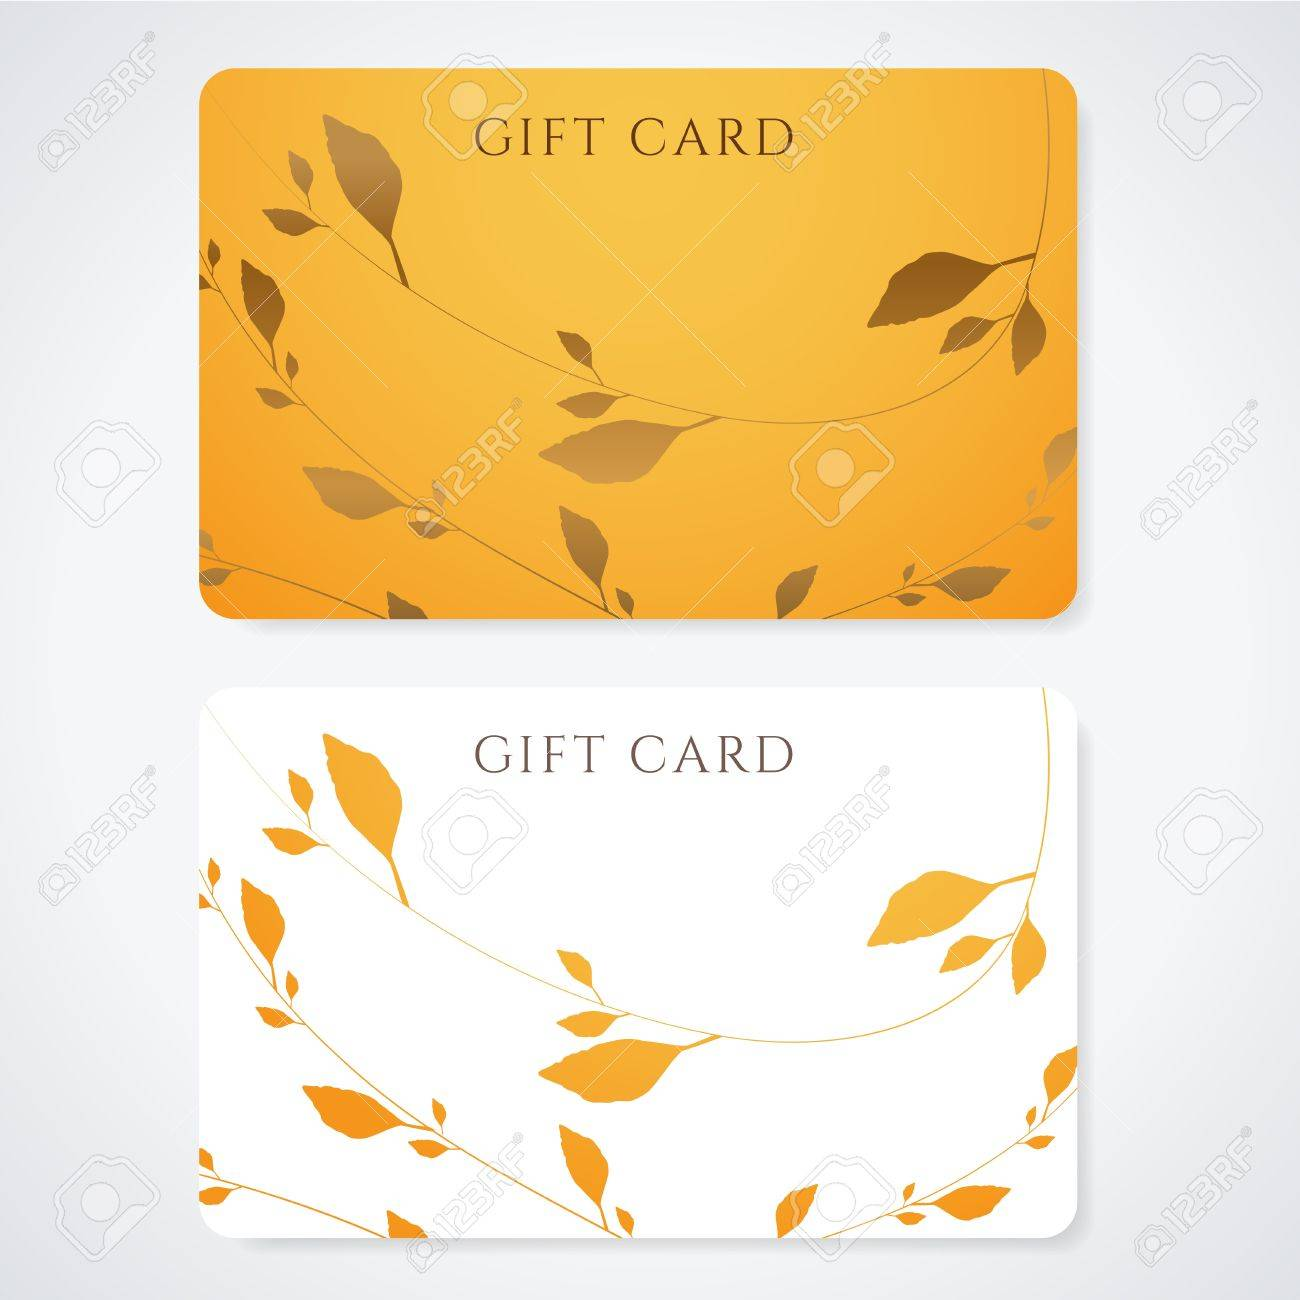 gift card discount card business card floral pattern gift card discount card business card floral pattern background design usable for gift coupon